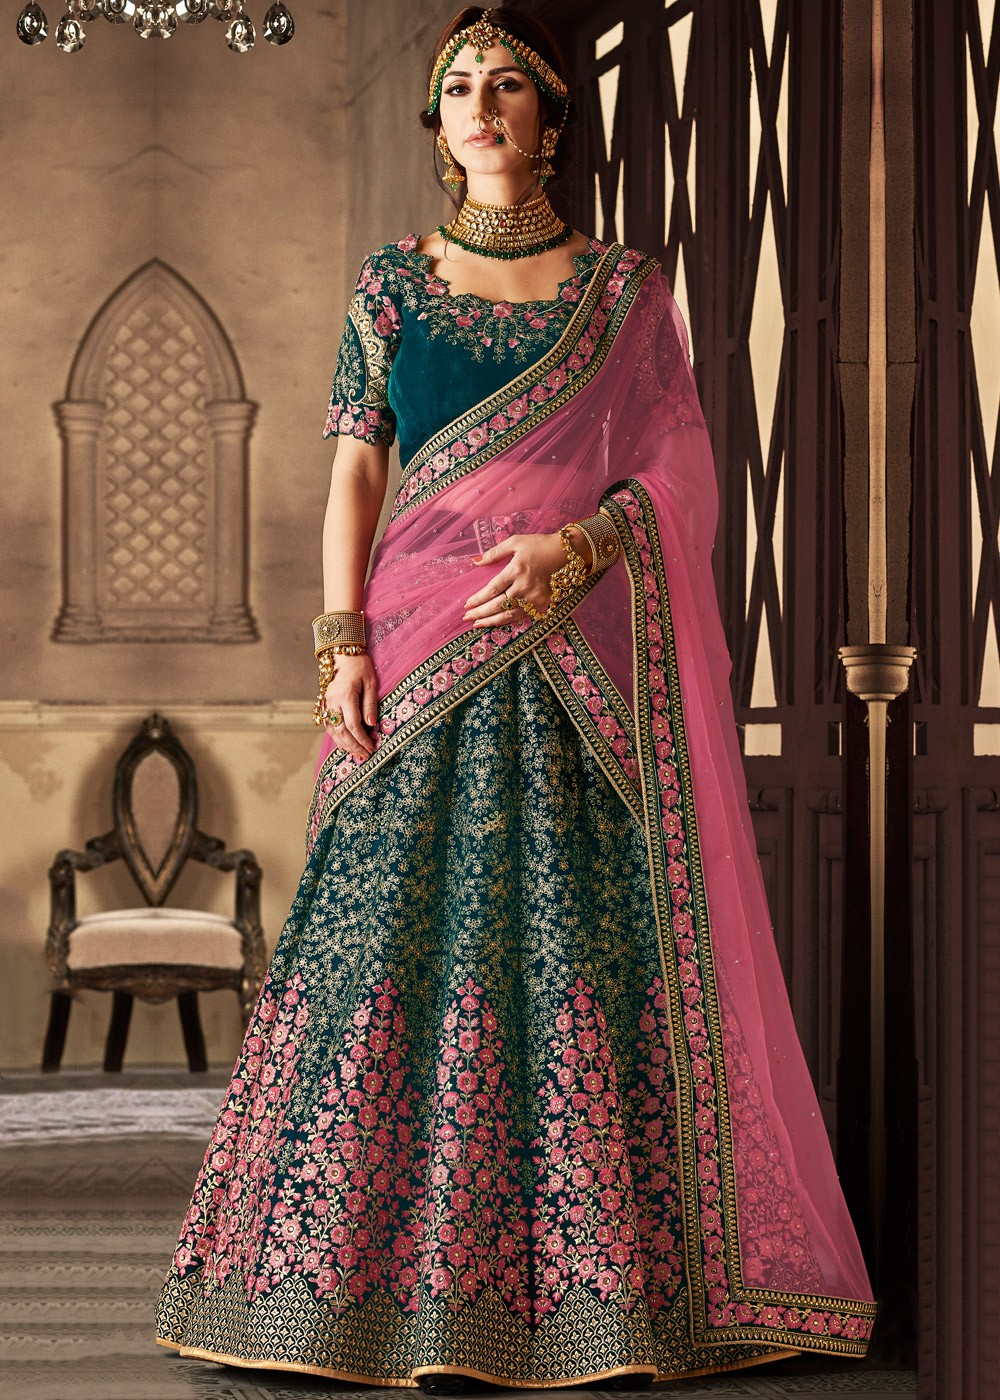 Green Velvet Bridal Lehenga Choli With Dupatta Anarkali Mughal Era 1652lg04